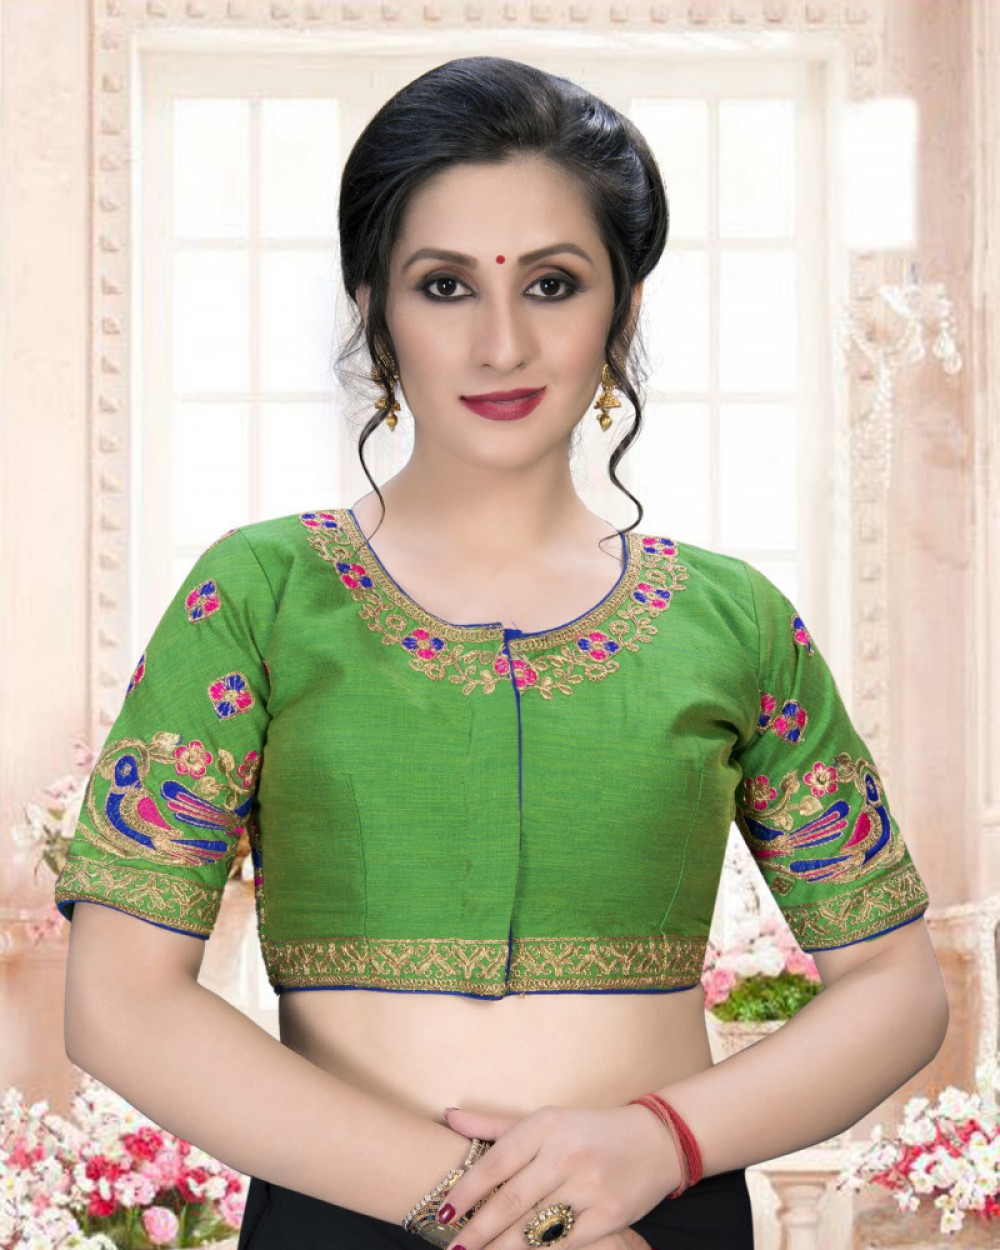 Meticulous Green Colour Phantom Silk Stylish Blouse for Girls